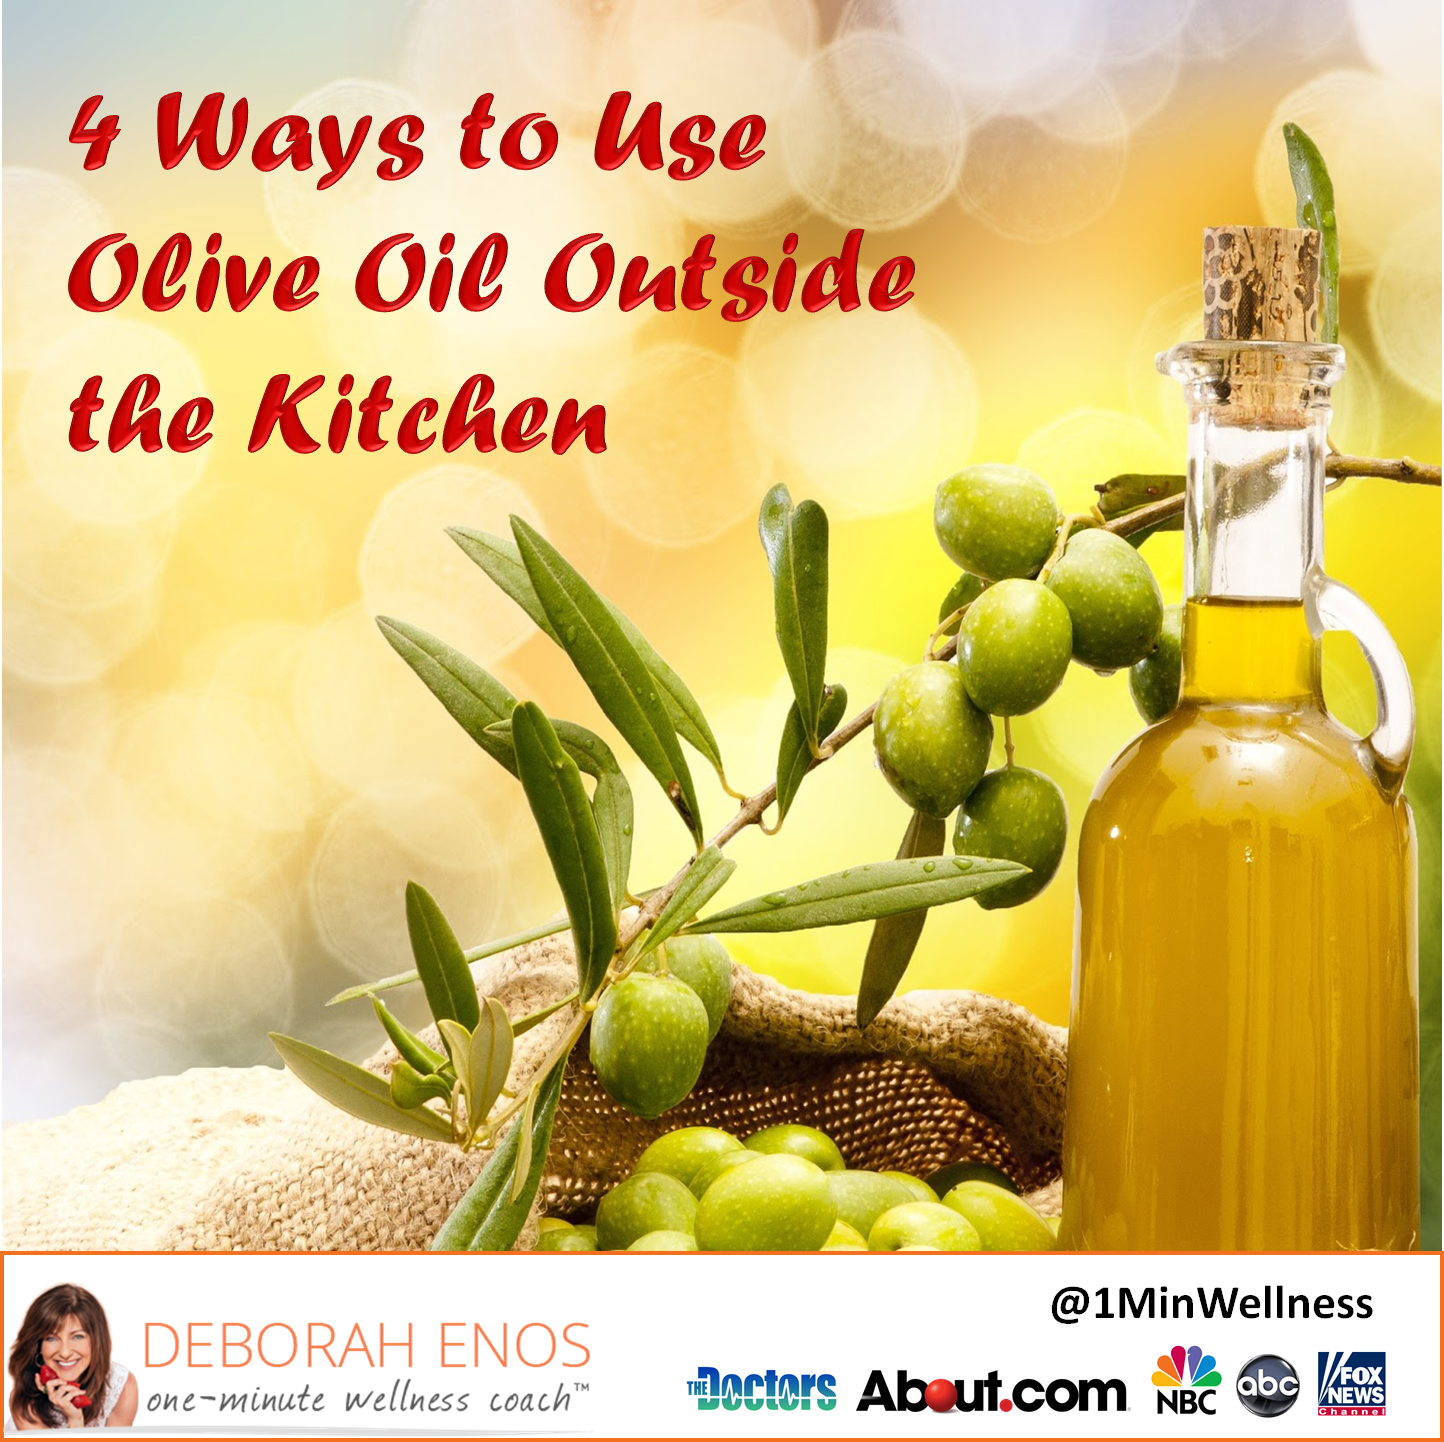 Deborah Enos Uses for Olive Oil